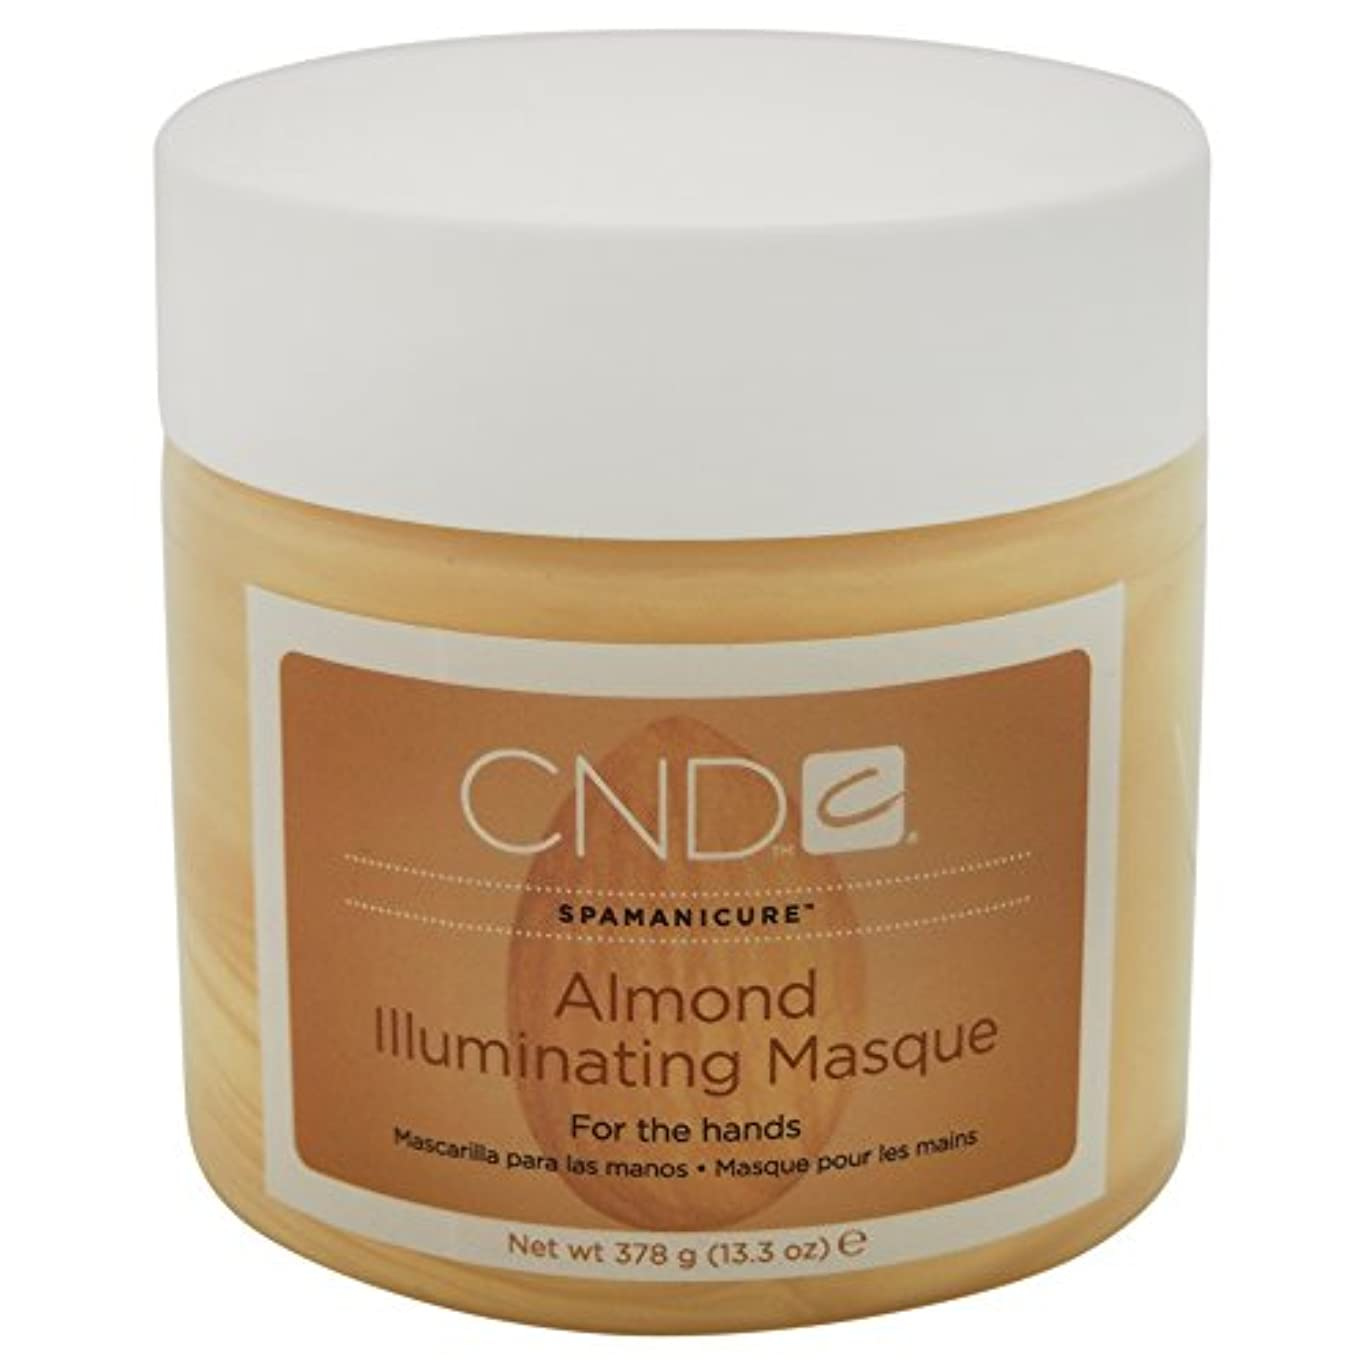 編集者任意からかうSpamanicure Almond Illuminating Masque